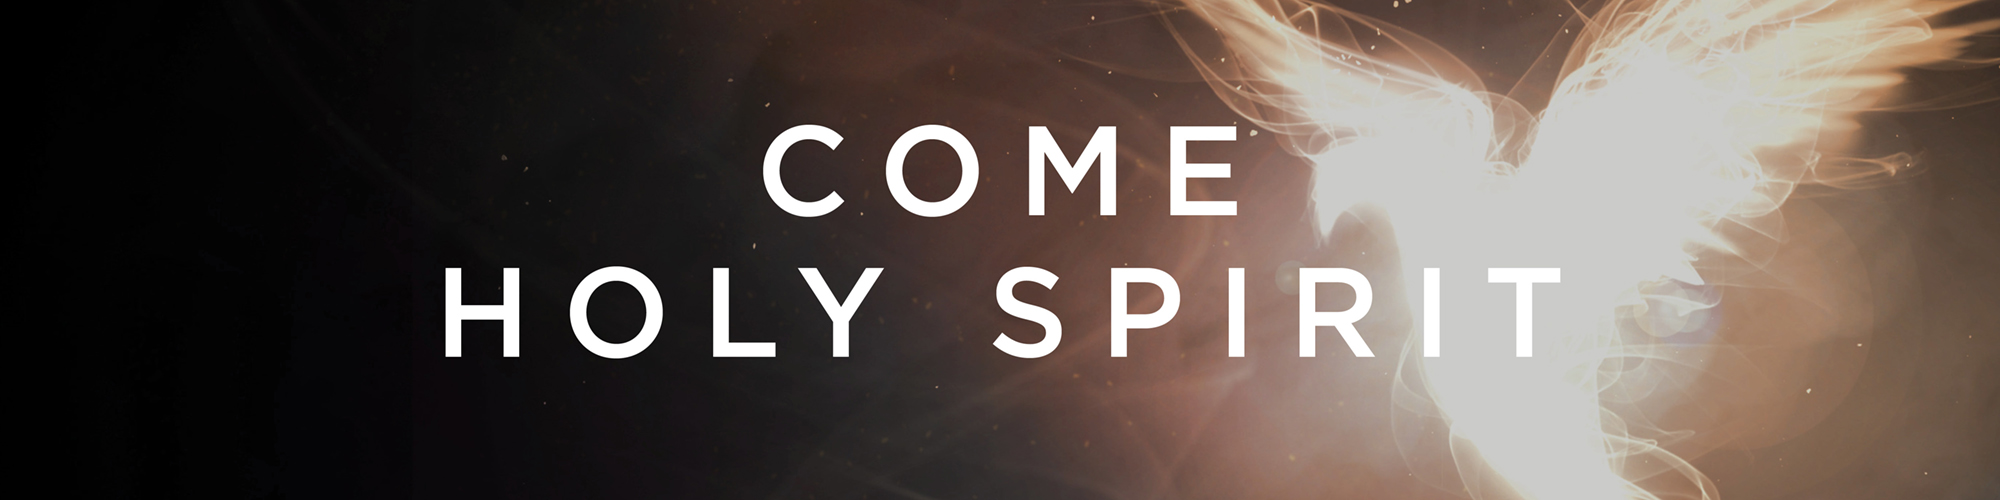 Considering the transformative power of the Holy Spirit in our lives as described in Romans 8, and what happens when we surrender to the journey of walking in the Spirit.